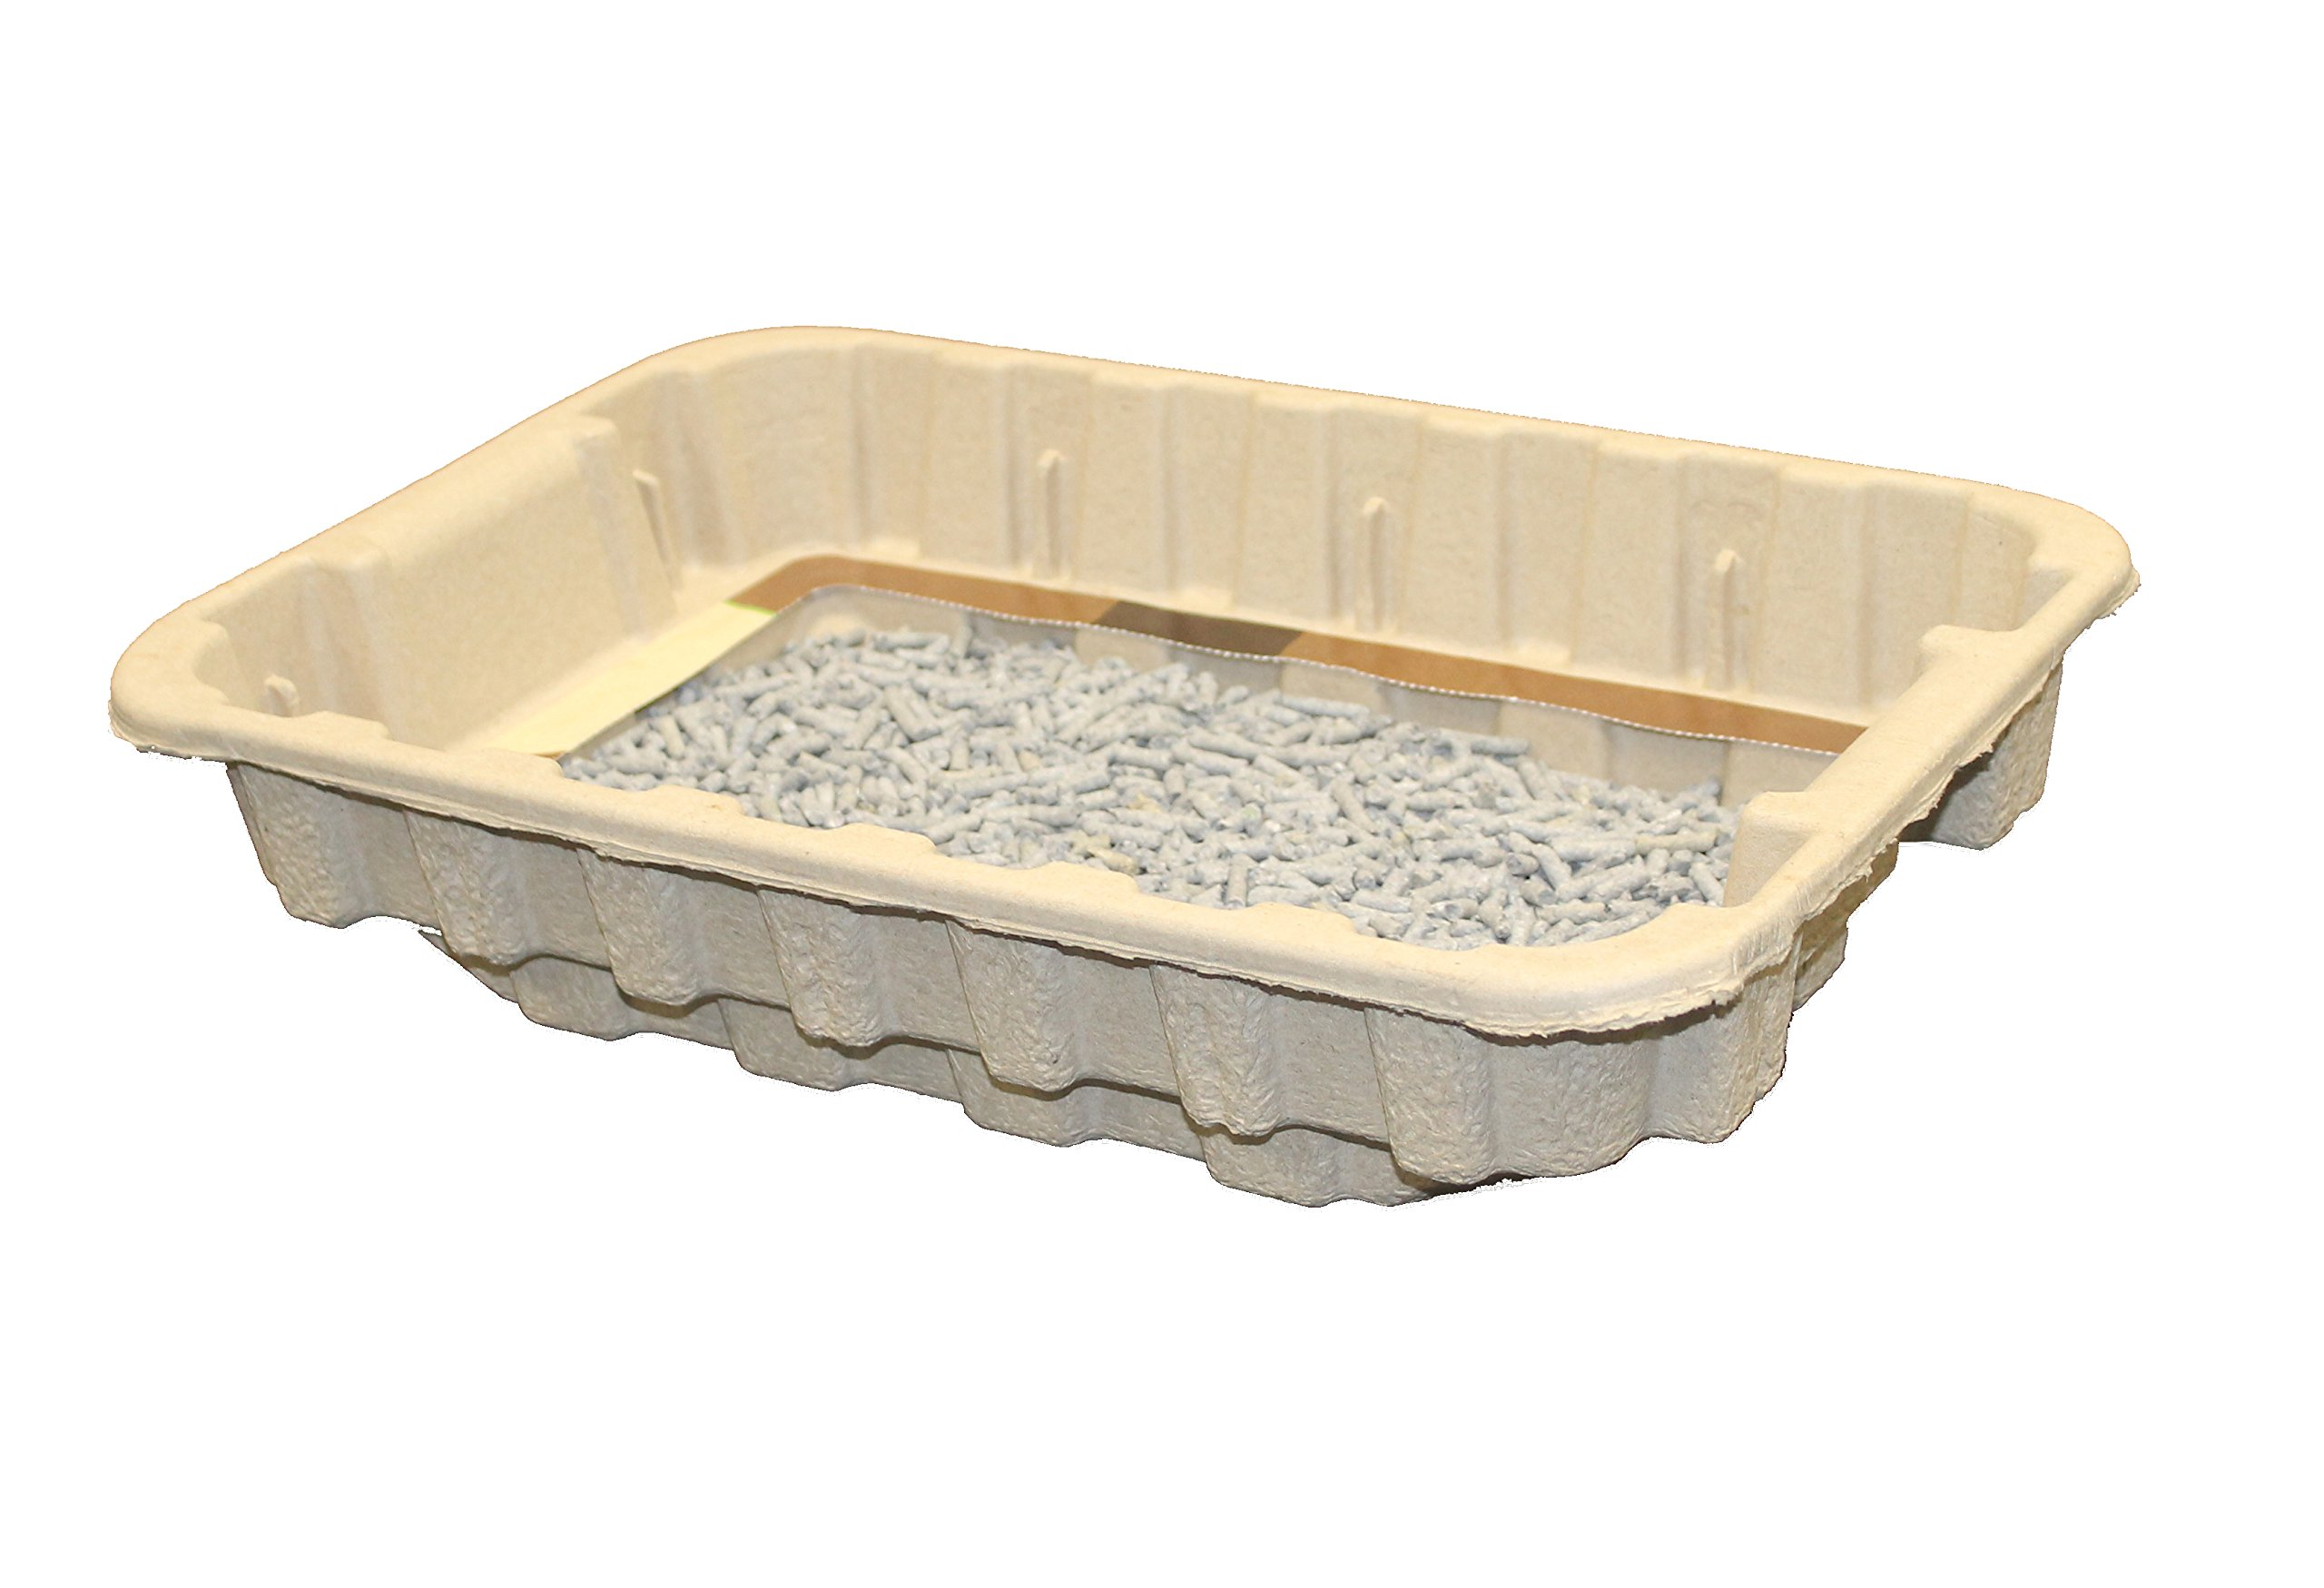 Disposable Cat Litter Boxes, Pre-Filled with 100% Recycled Paper Litter Pellets- 5 Pack of Trays- Includes Litter. Eco Friendly! Simply Peel Off Perforated Lid, Use, Dispose of Entire Tray! 7